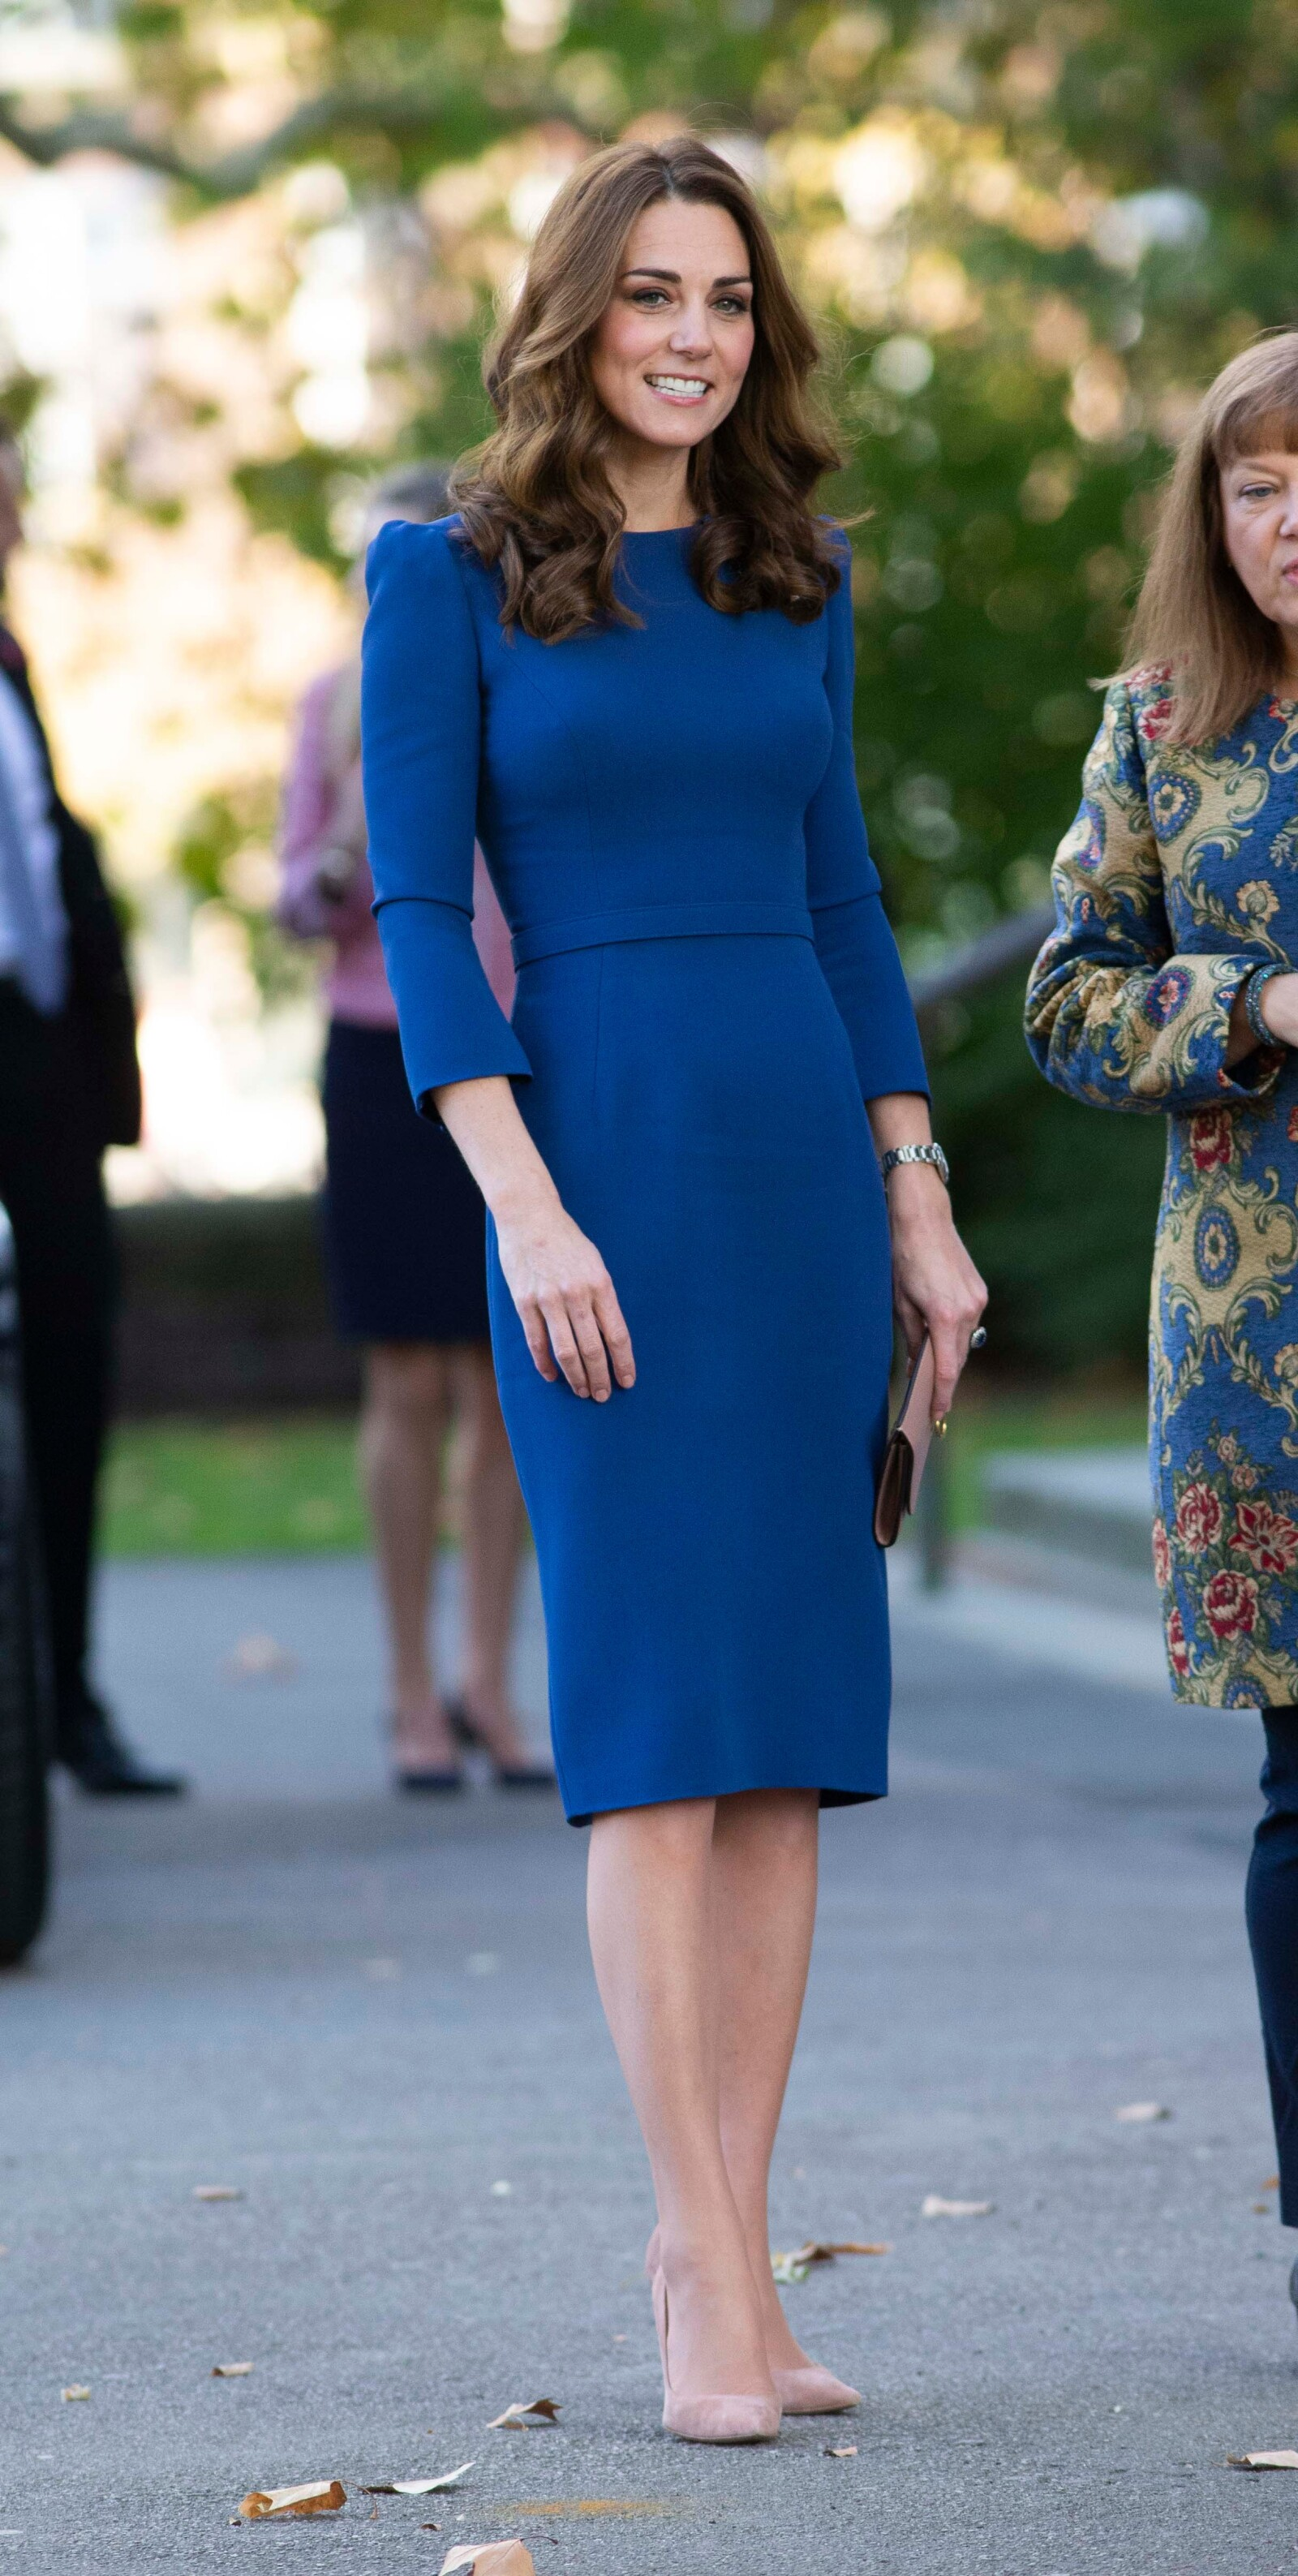 Catherine Duchess of Cambridge visits the Imperial War Museum, London, UK - 31 Oct 2018